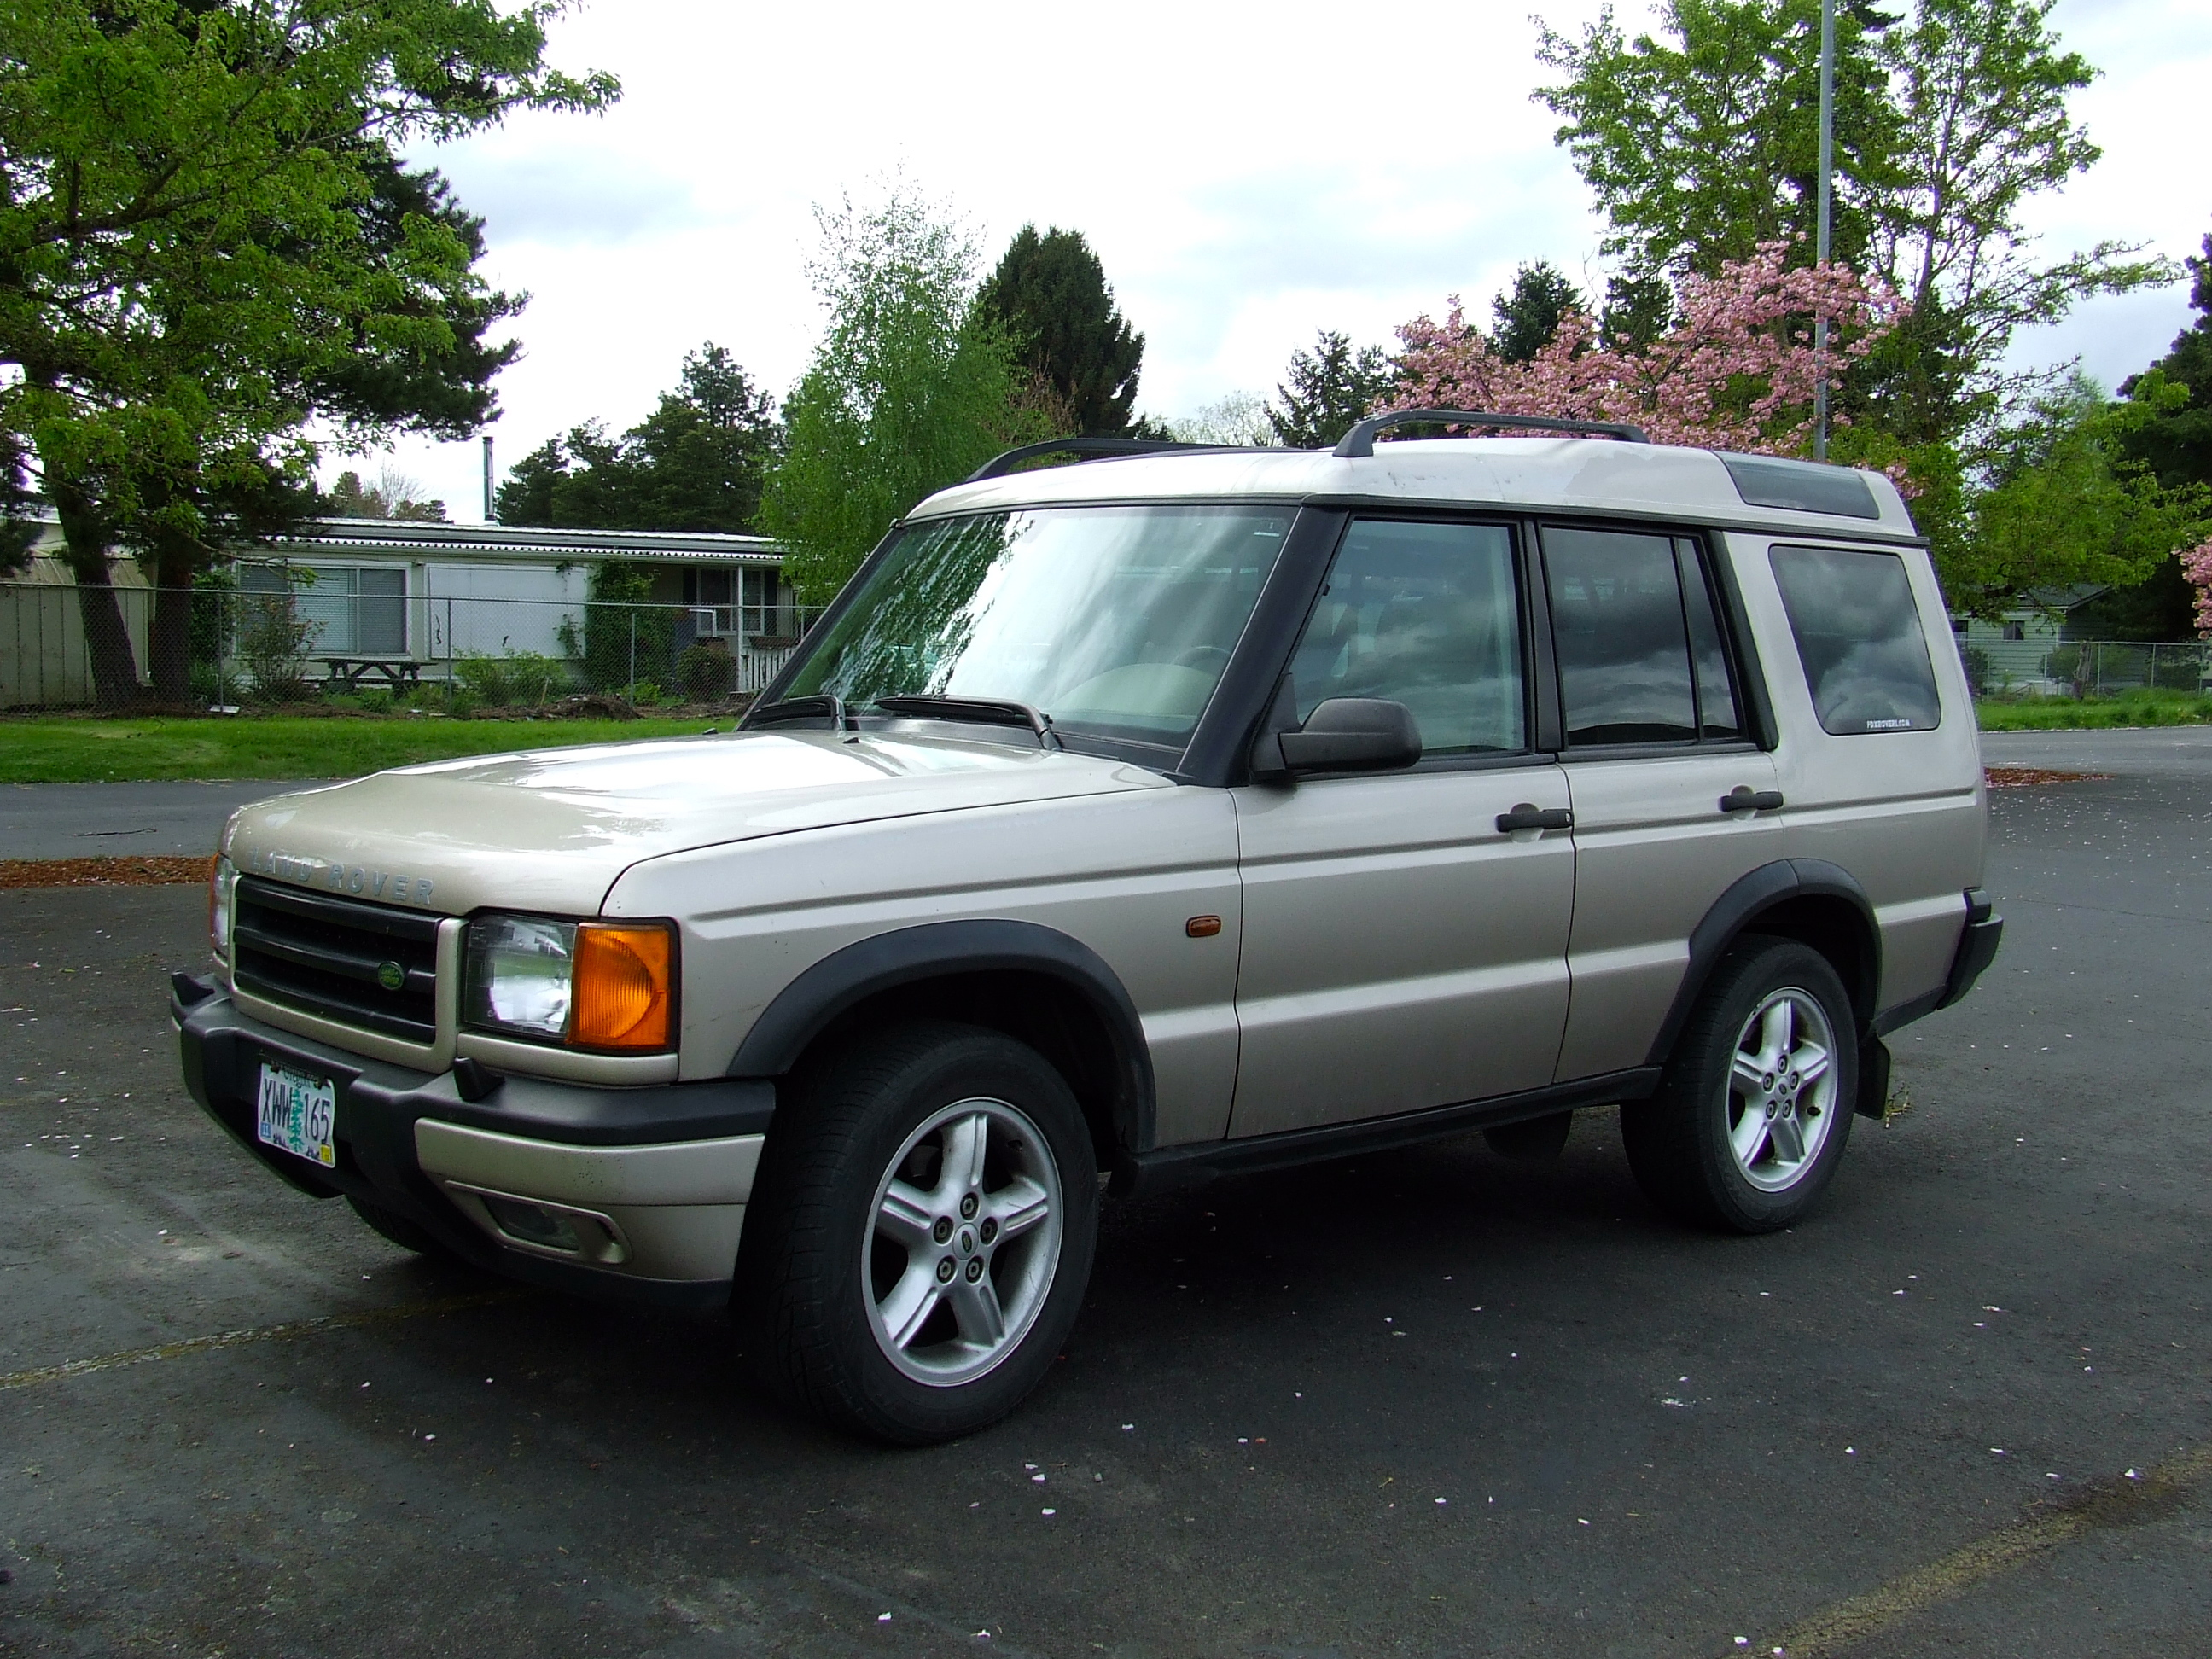 Cars Of A Lifetime: 2000 Land Rover Discovery II SE7 – Oops, I Did It Again